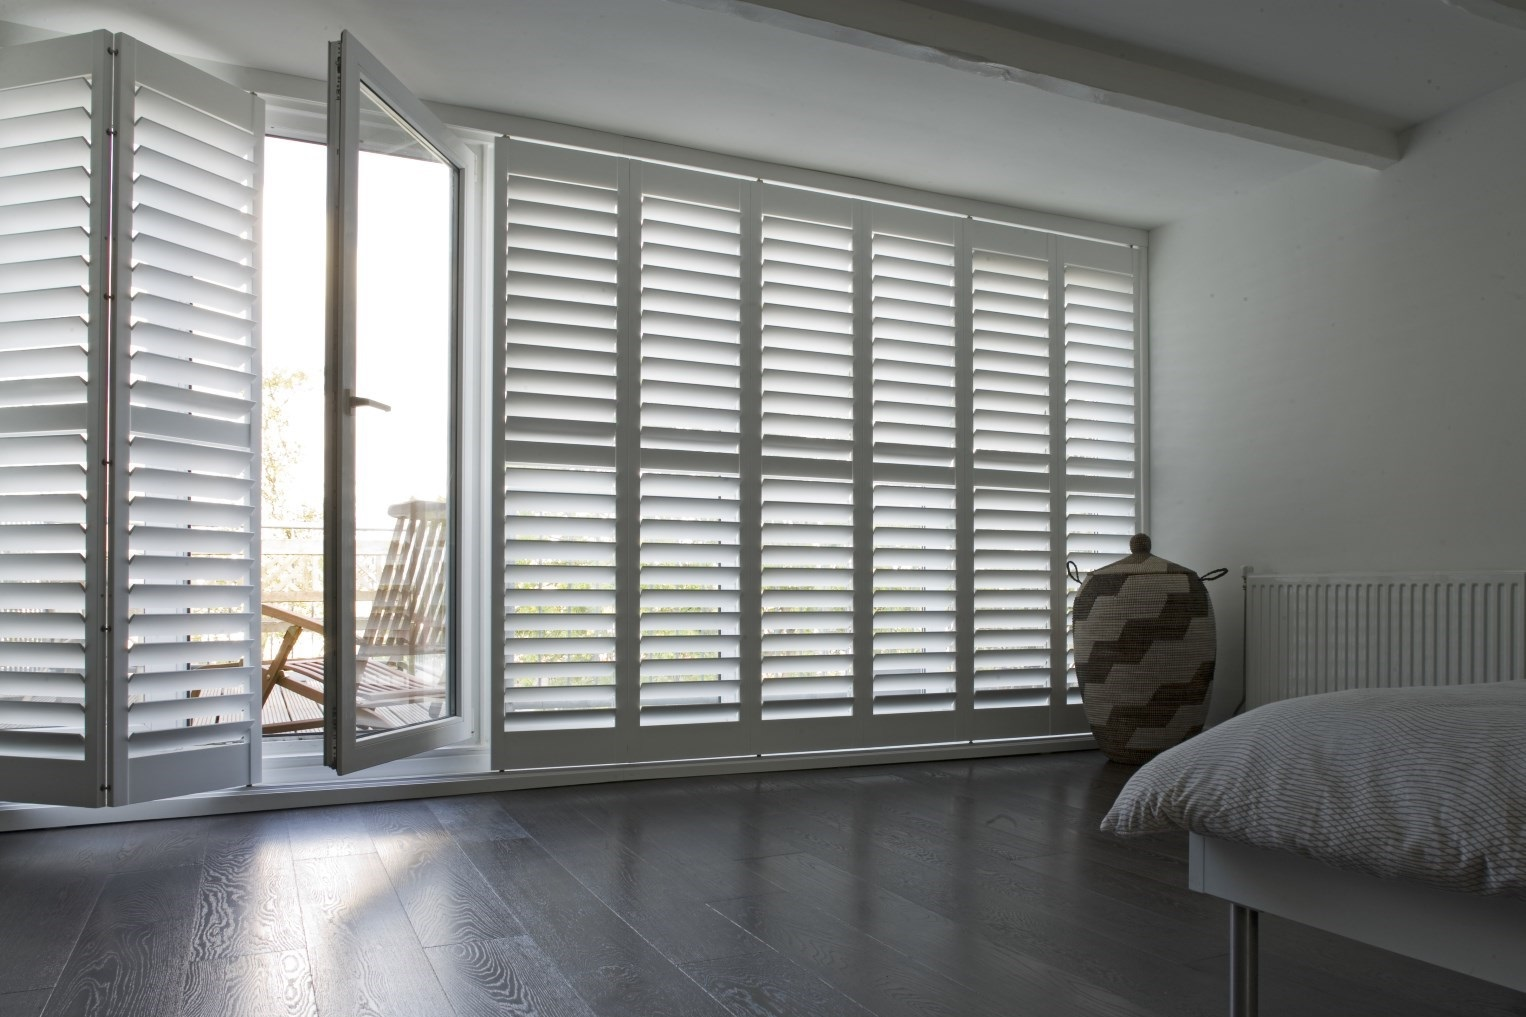 Shutters Tailor Made JASNO Windowdecoration Shutters